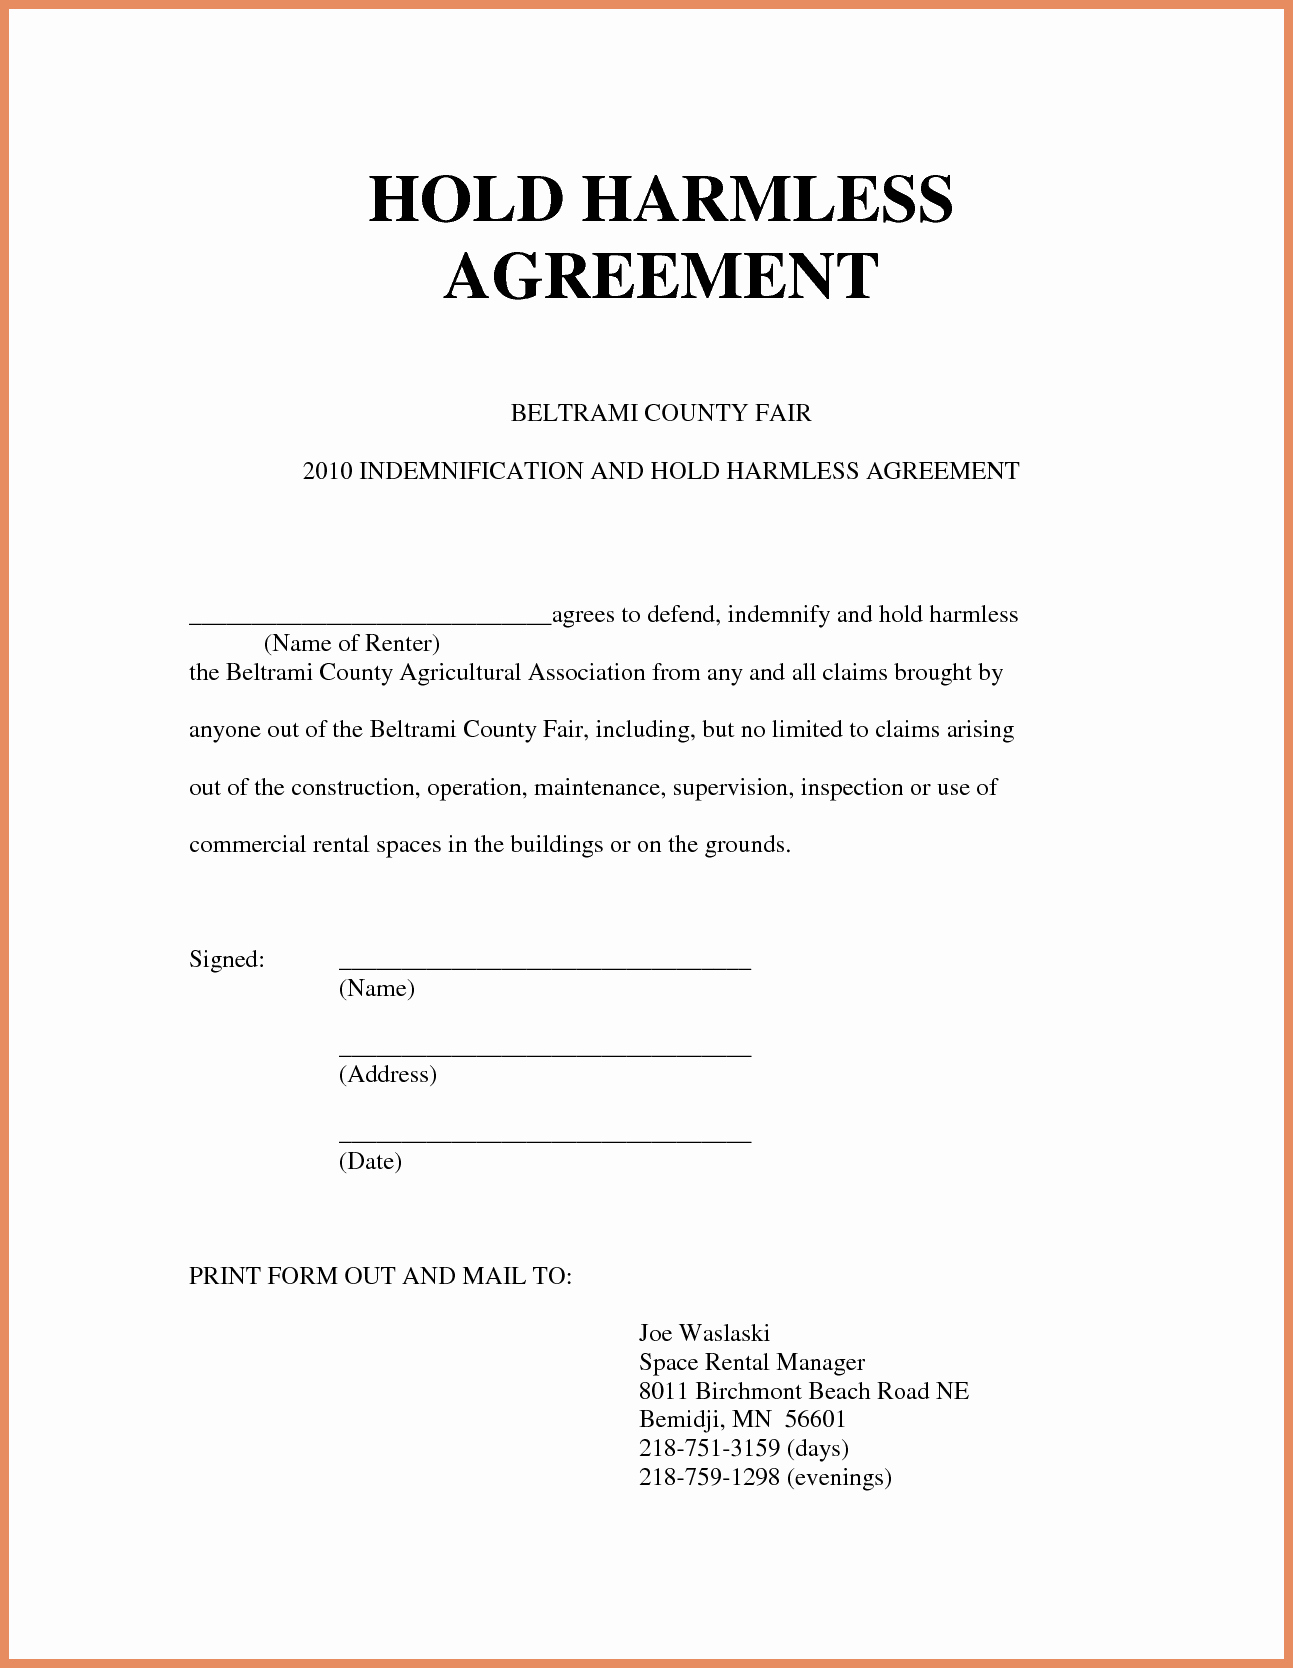 Hold Harmless Agreement Template Beautiful Hold Harmless Agreement Sample